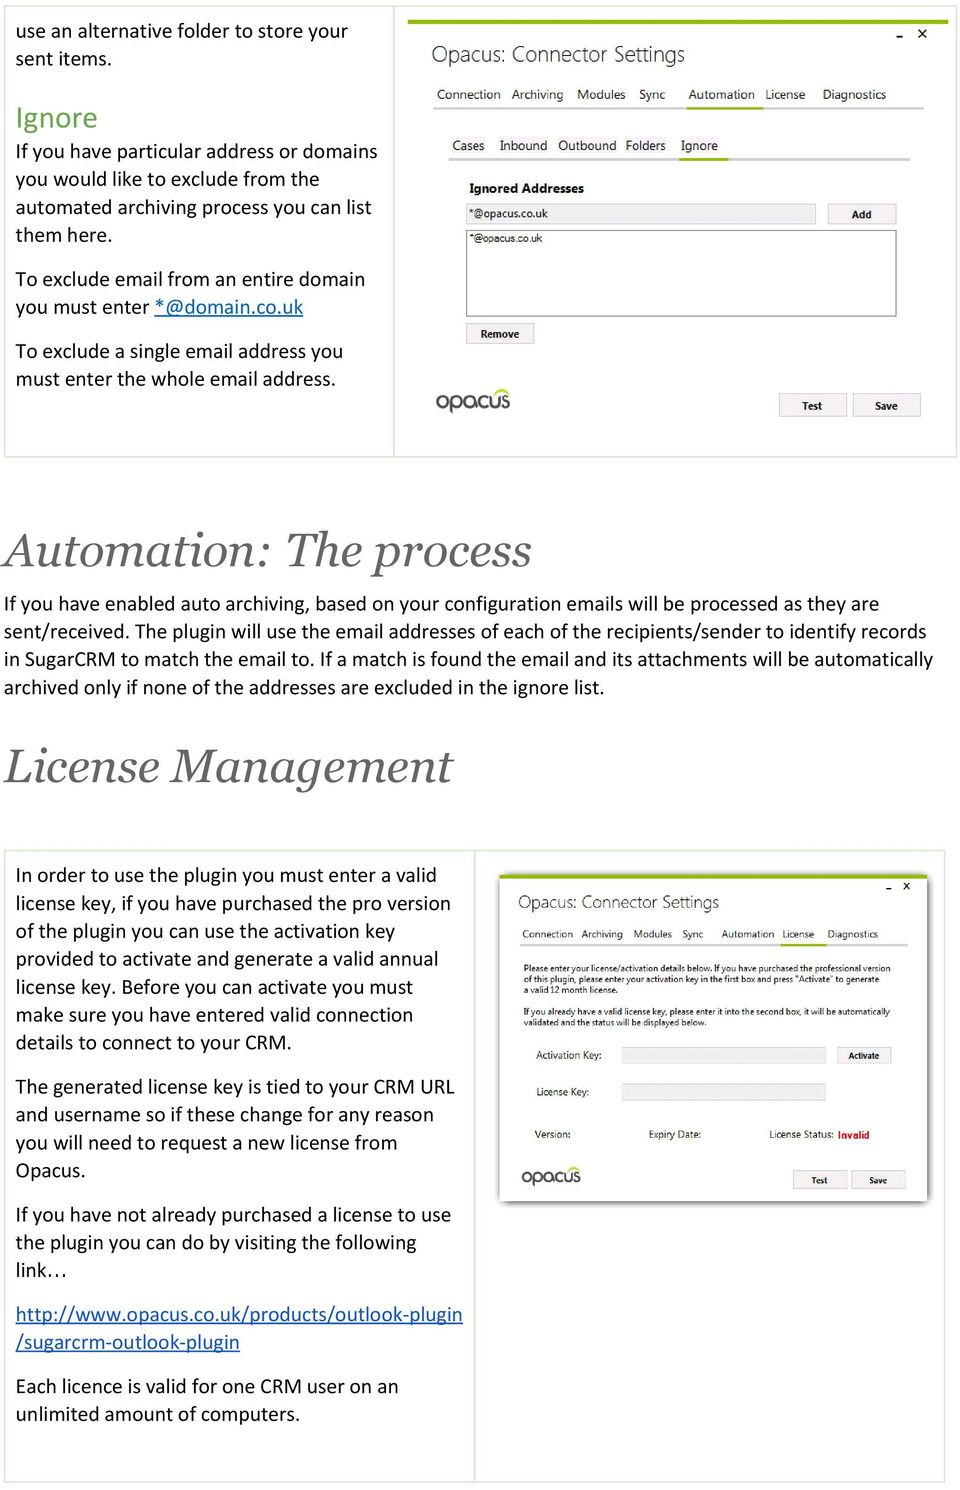 Automation: The process If you have enabled auto archiving, based on your configuration emails will be processed as they are sent/received.